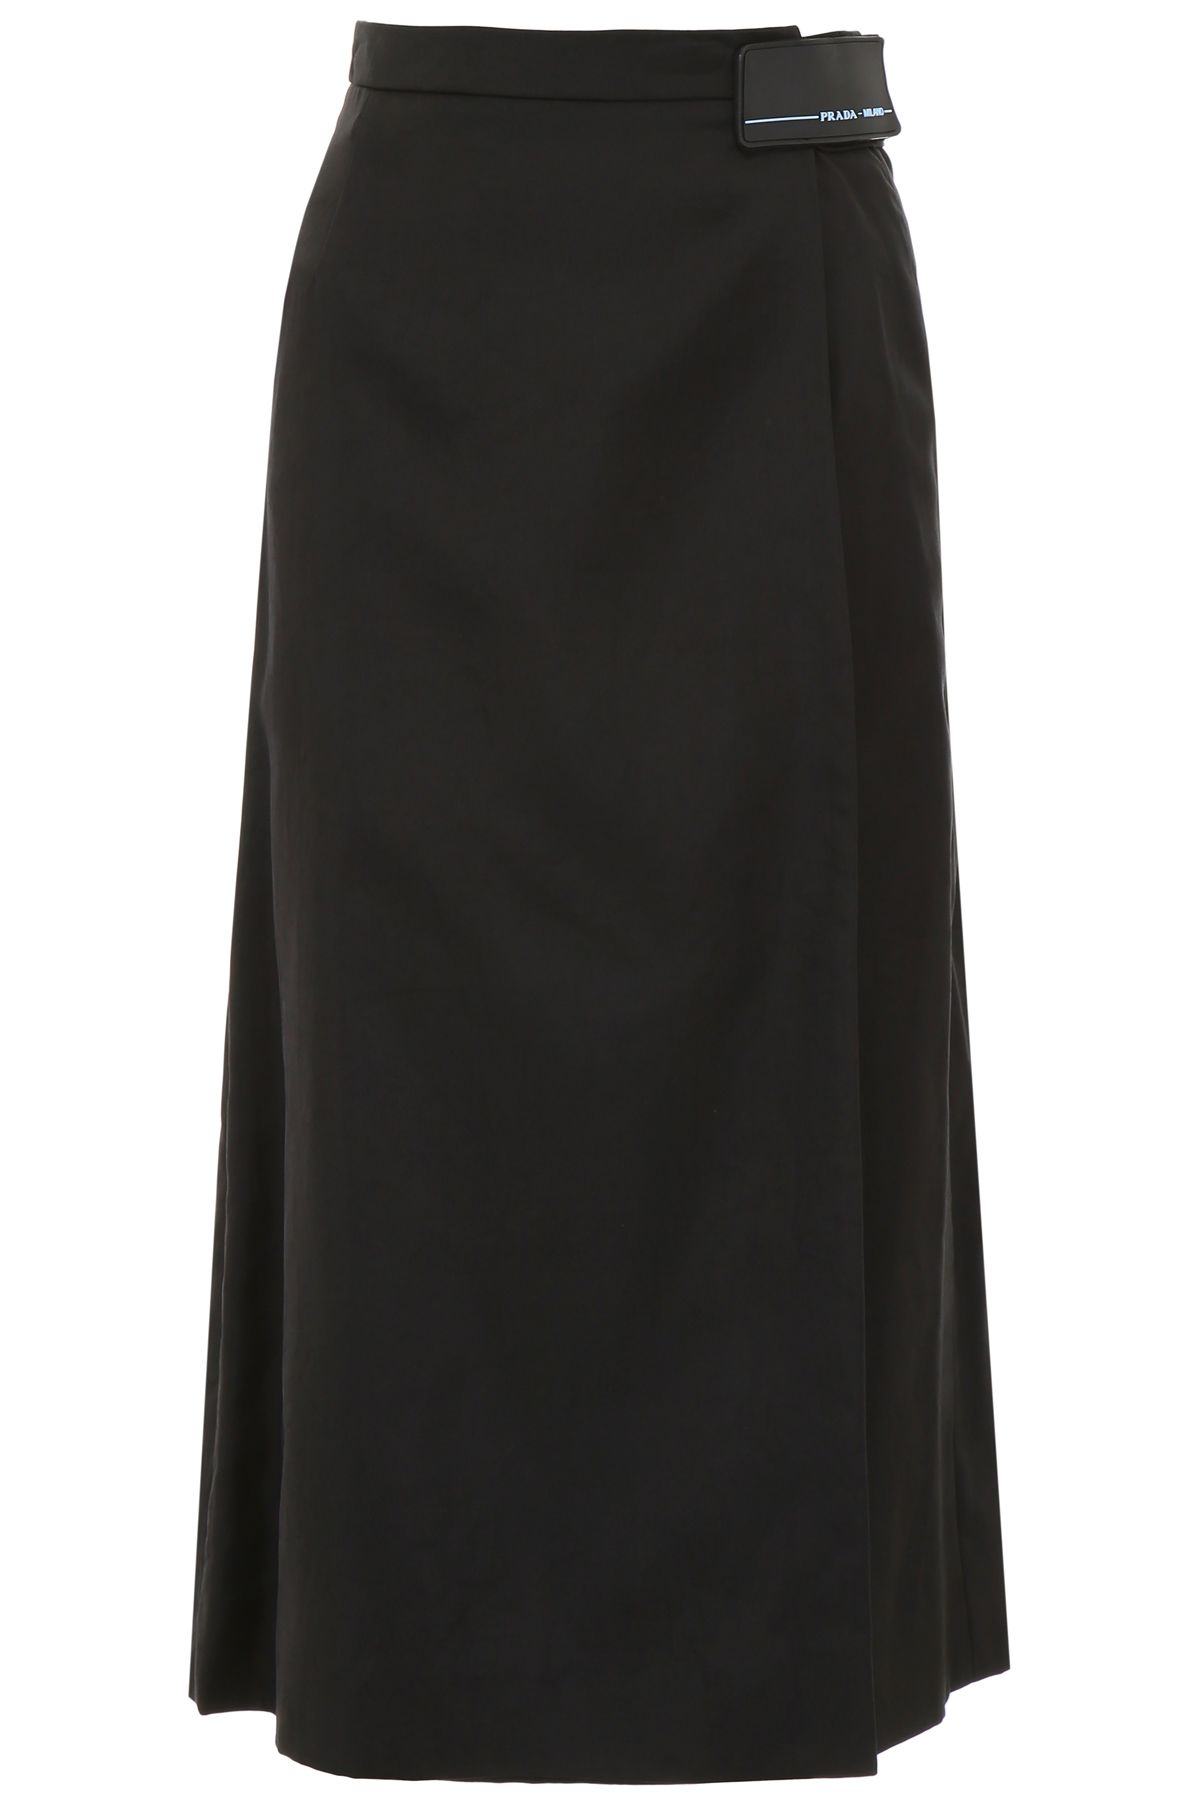 SKIRT WITH LOGO PATCH